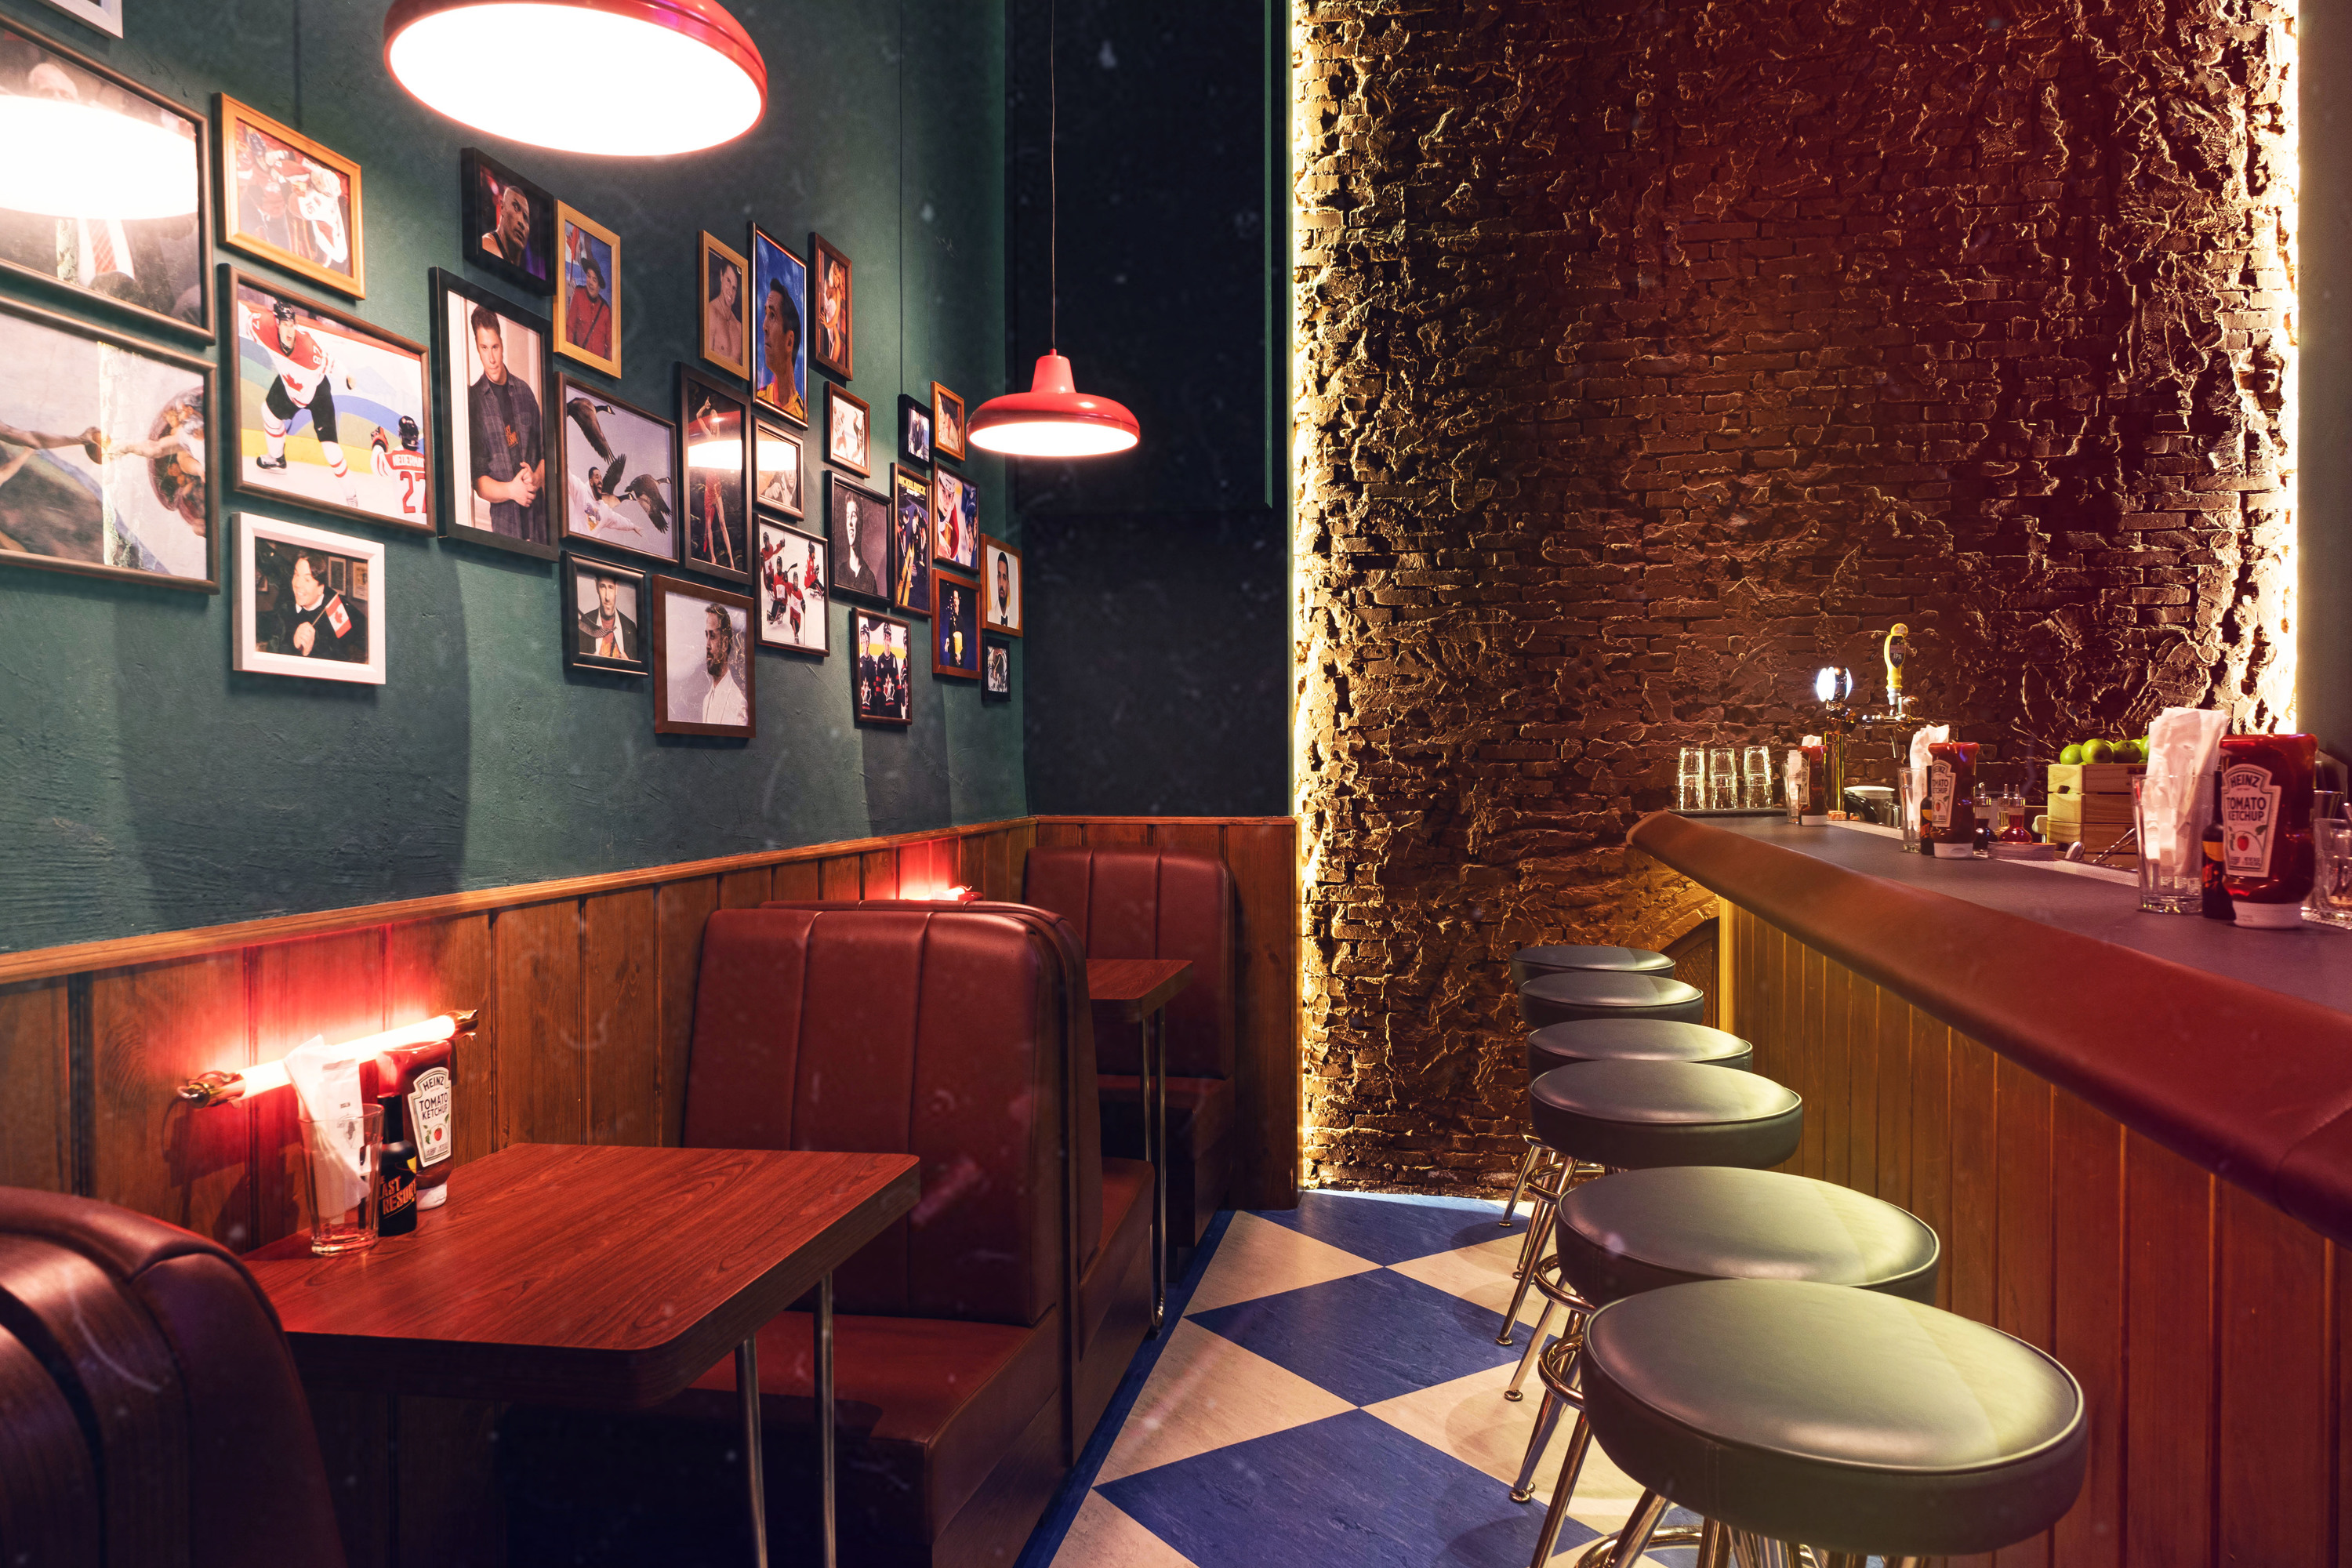 The Last Resort is the latest bar set to open in Soho this November